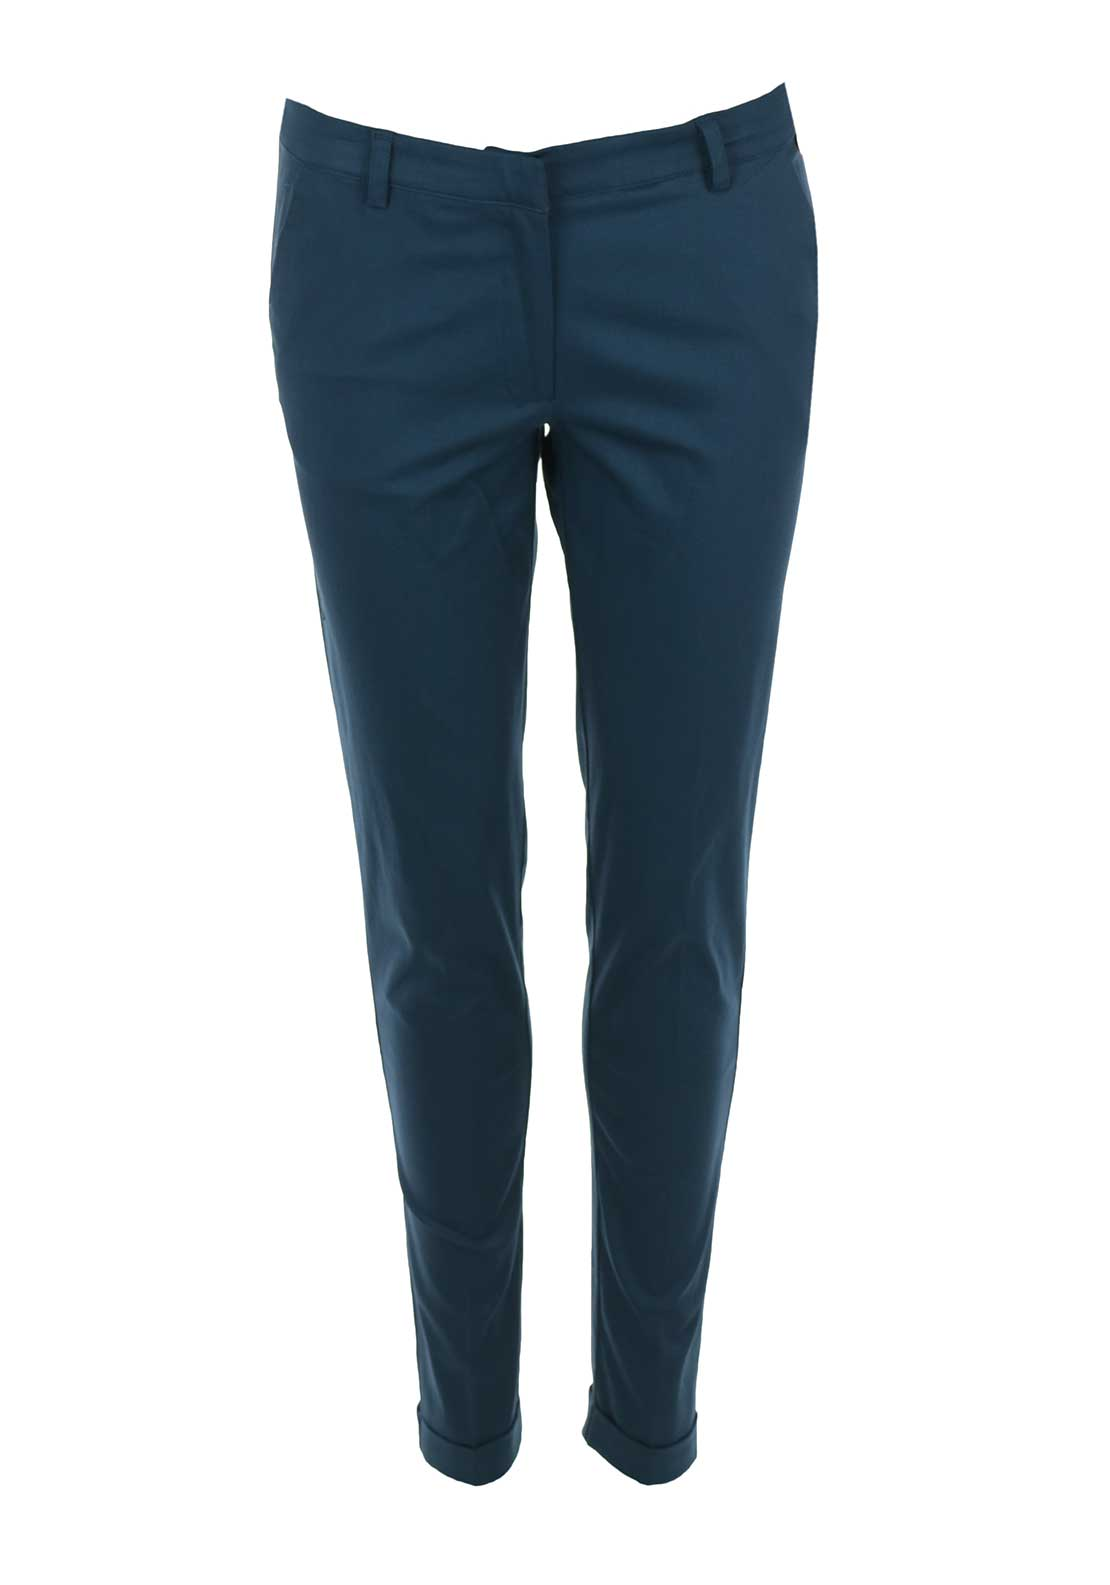 Rant & Rave Trudy Tapered Trousers, Teal